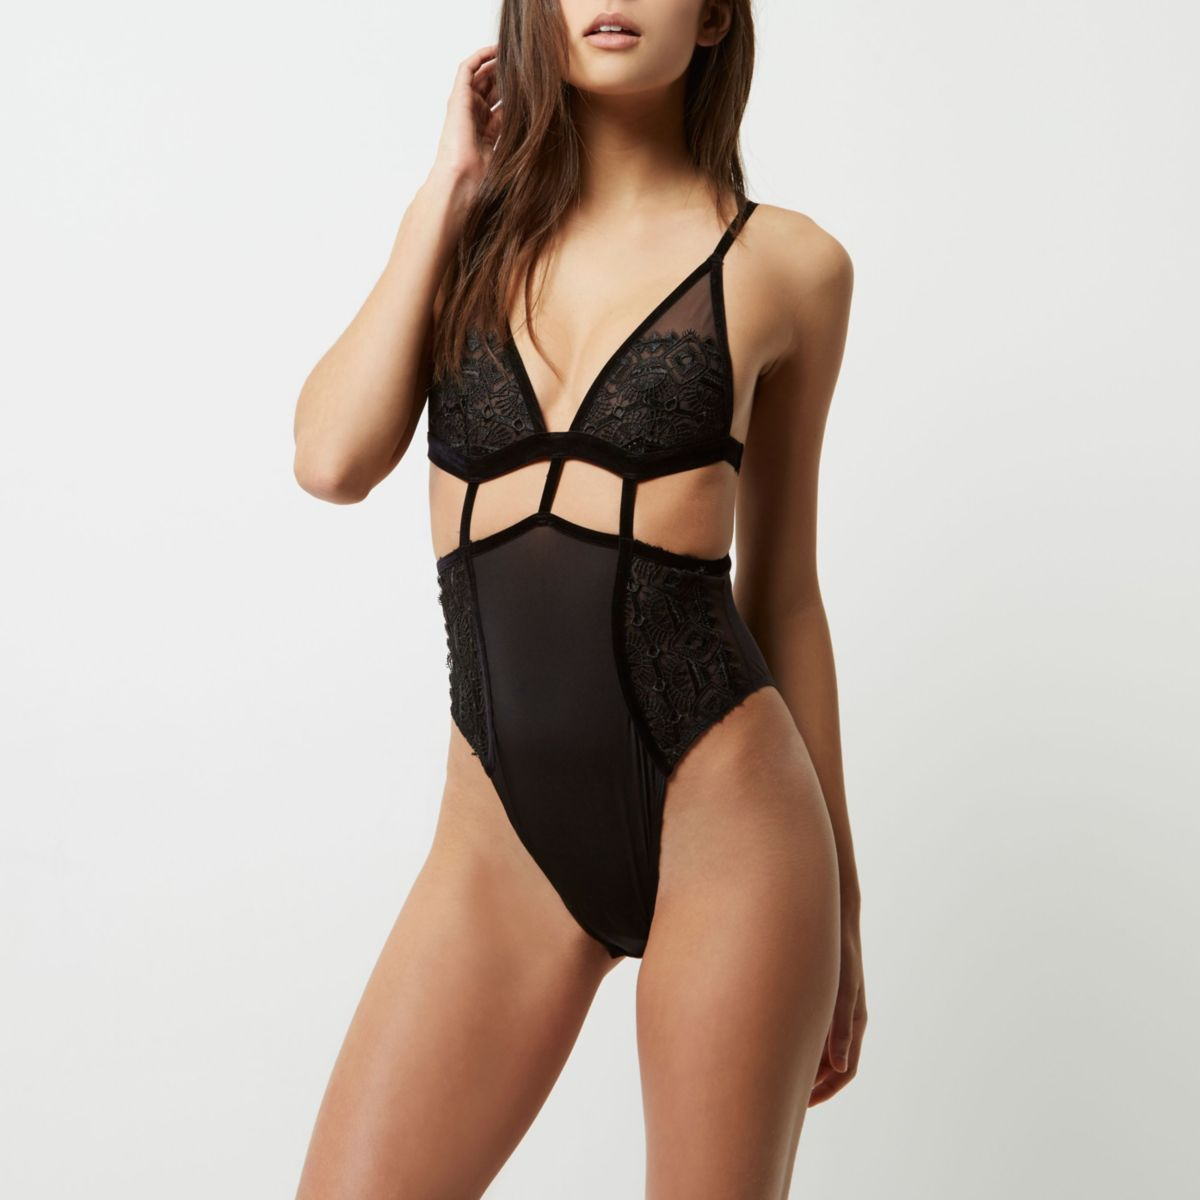 Lingerie for women. Shop sexy lingerie including bras, bralettes, fishnet tights, panties, lingerie teddies, robes, and bodysuits.